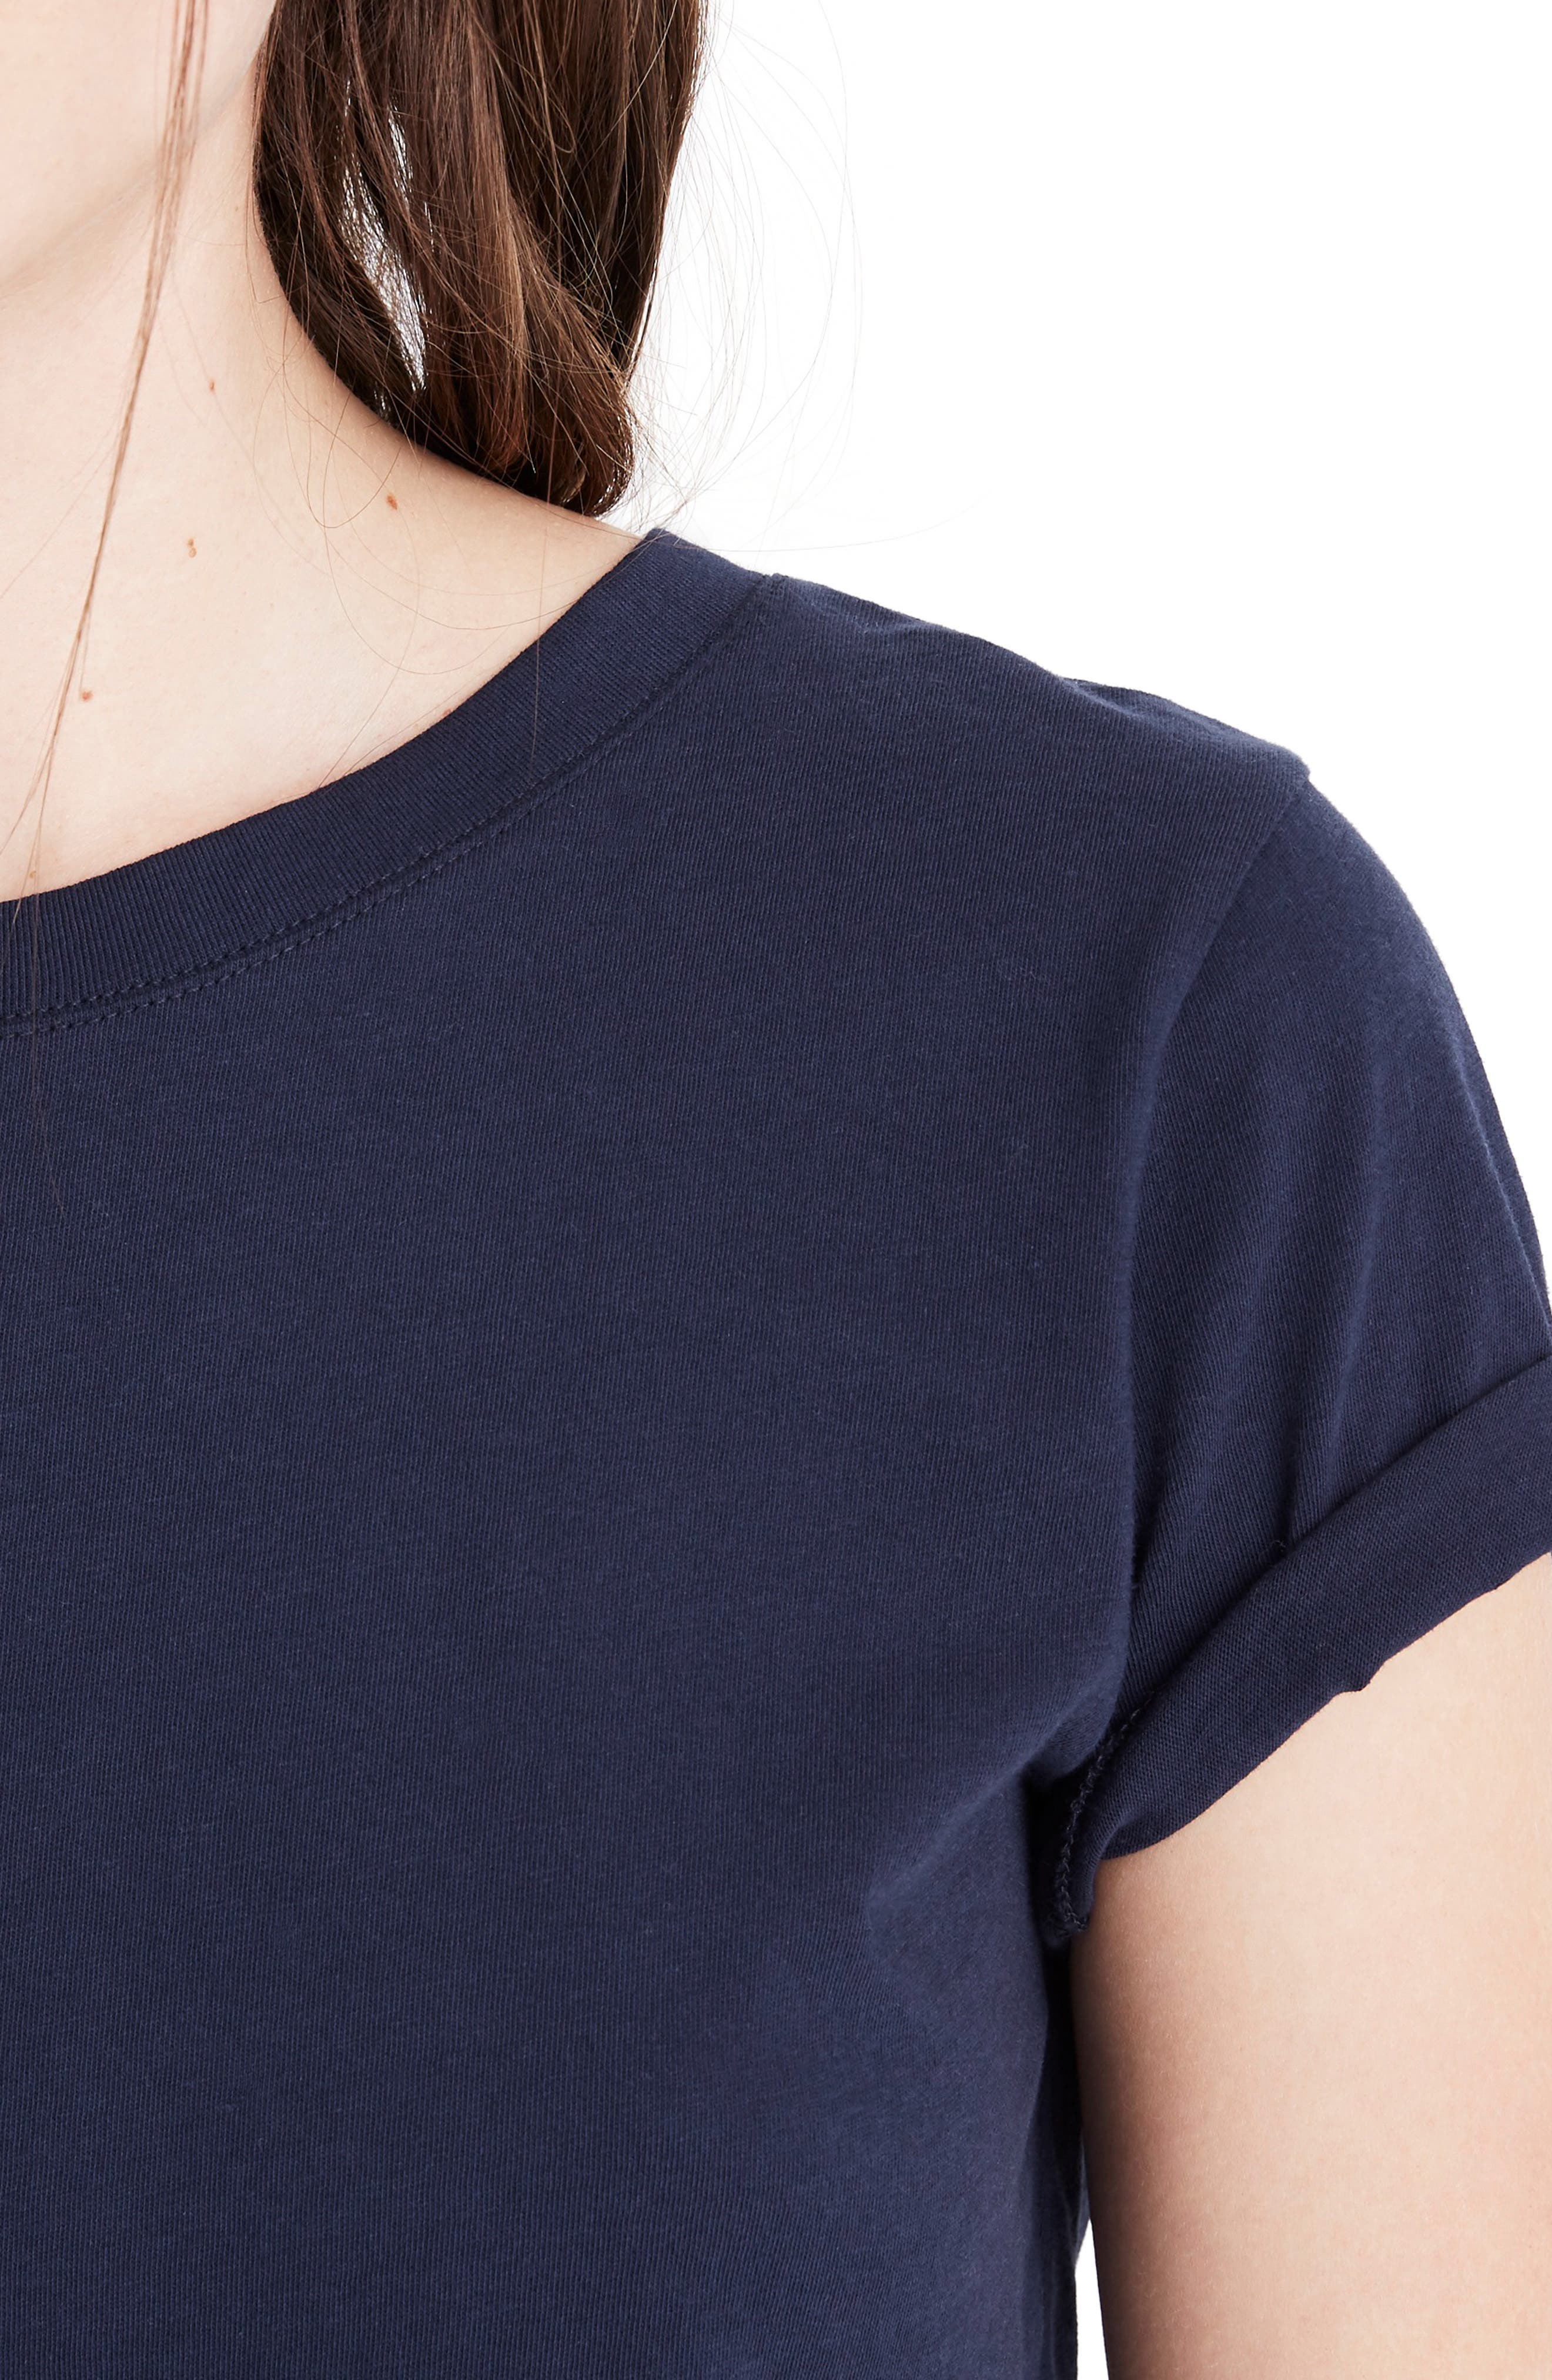 MADEWELL, Northside Vintage Tee, Alternate thumbnail 4, color, JUNIPER BERRY